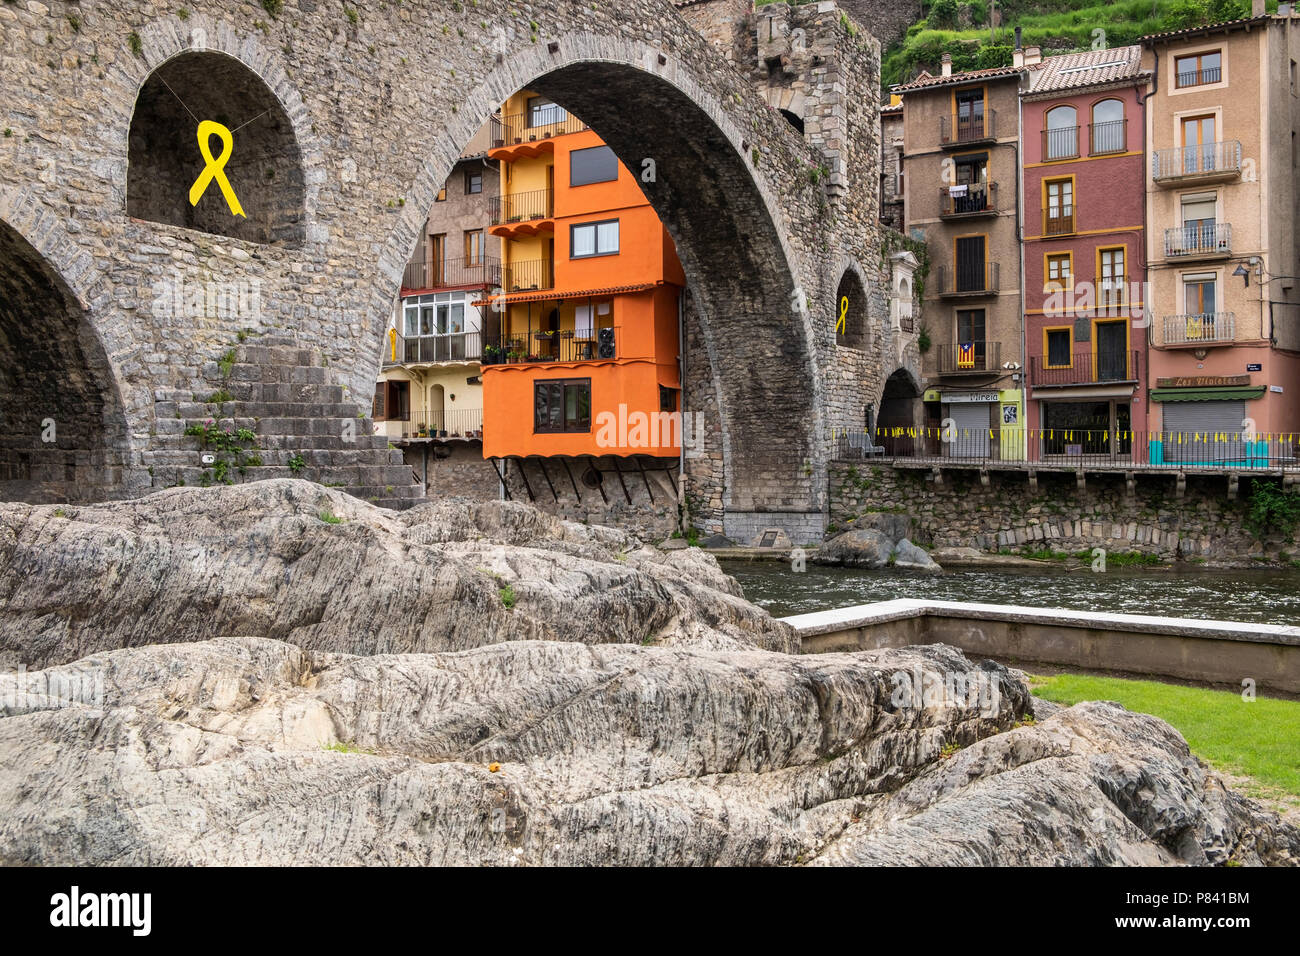 Pont Neu, the 12th century humpbacked bridge over the River Ter in Camprodon village in the Catalonian Pyrenees, Spain - Stock Image